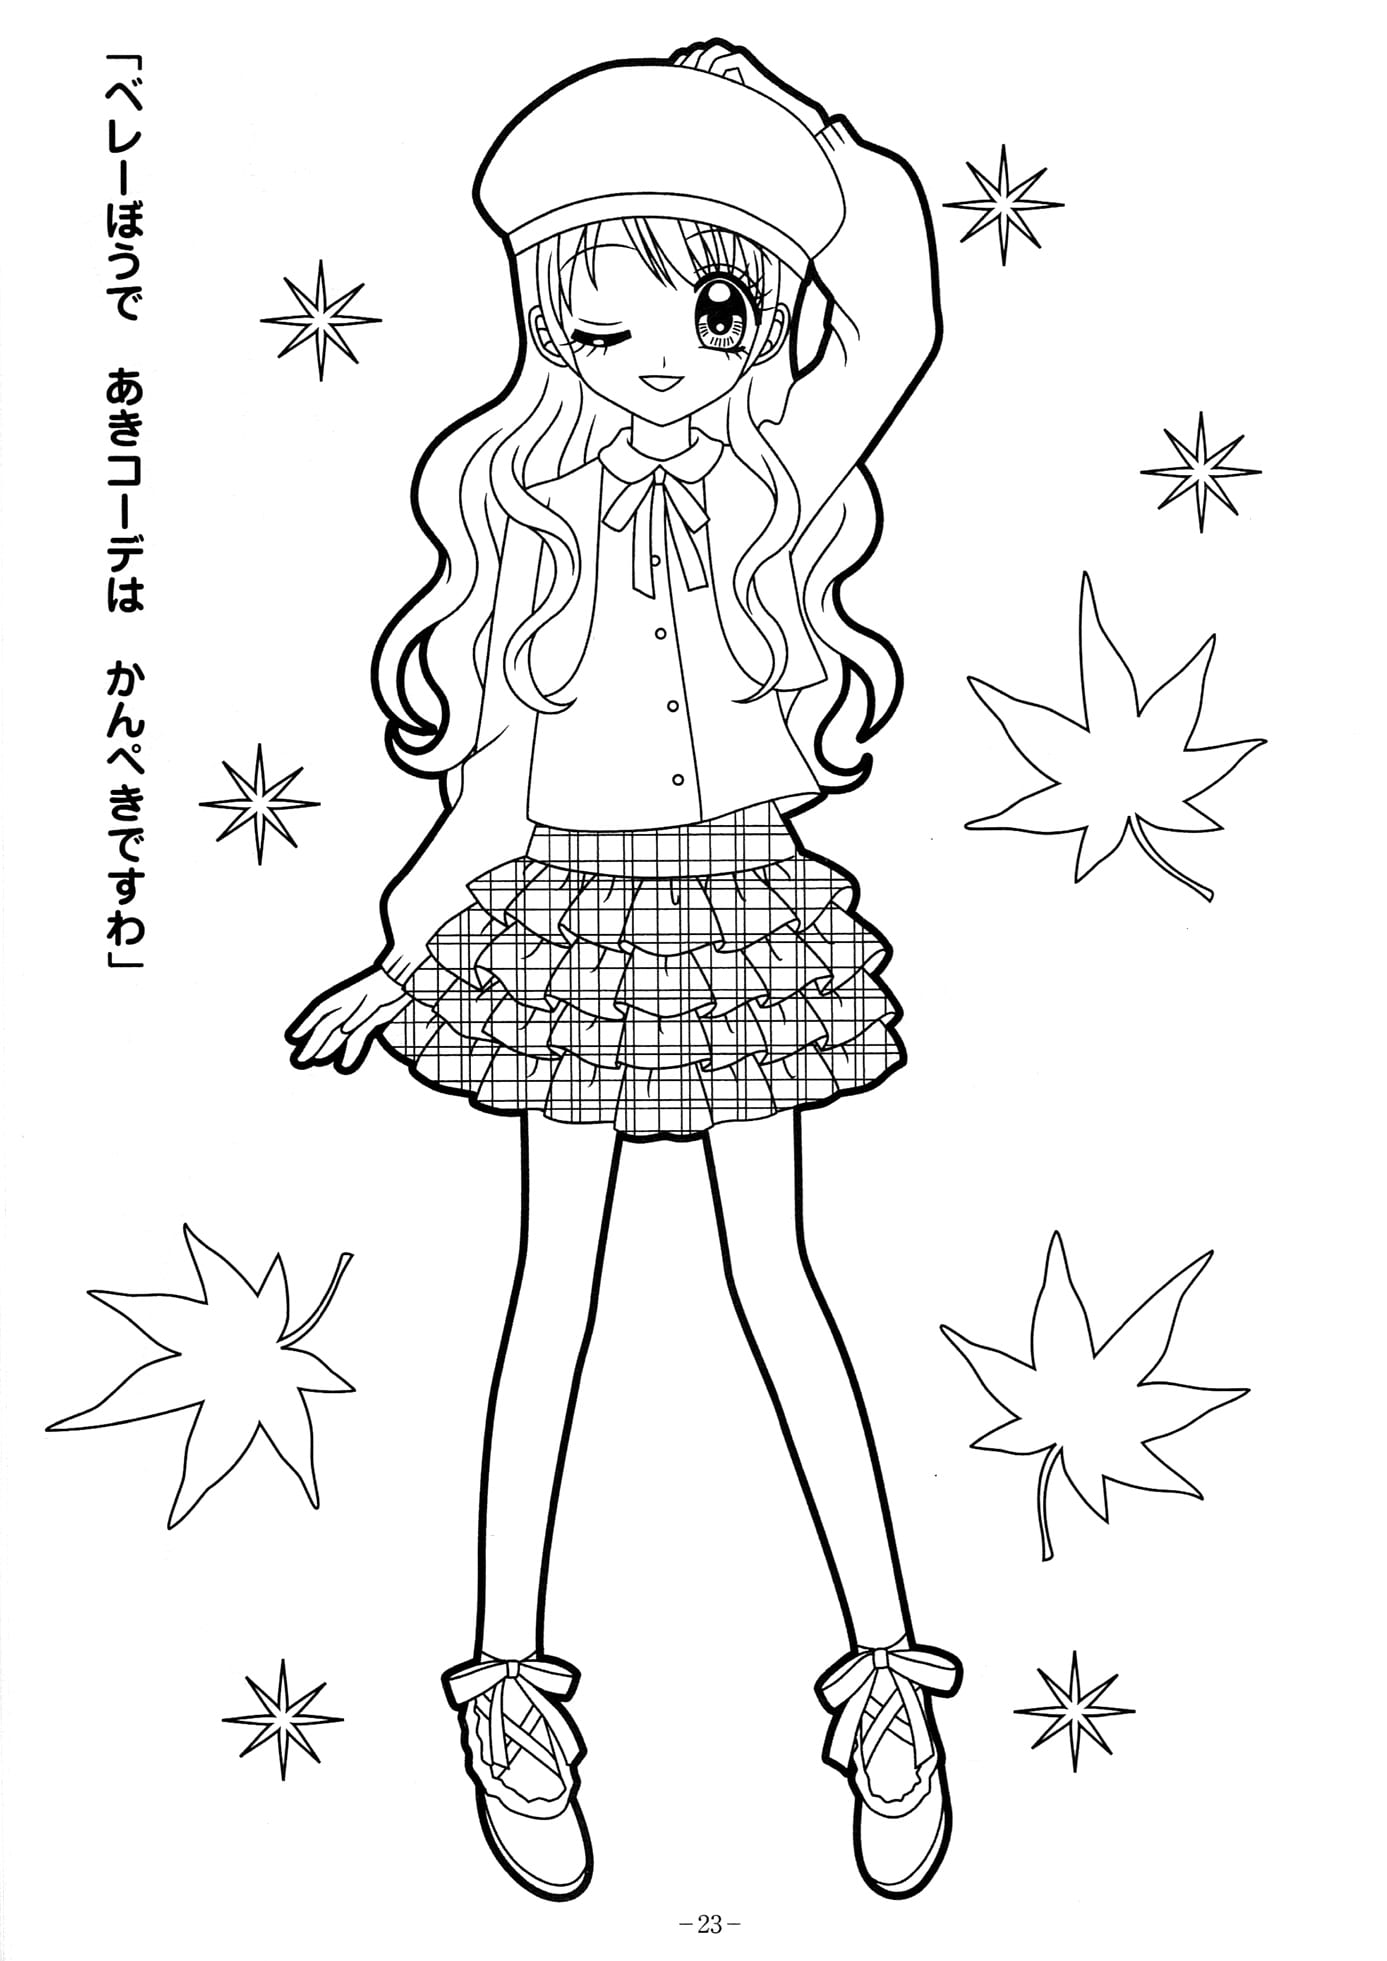 Cute Coloring Pages To Print For Girls 4690 866 1024